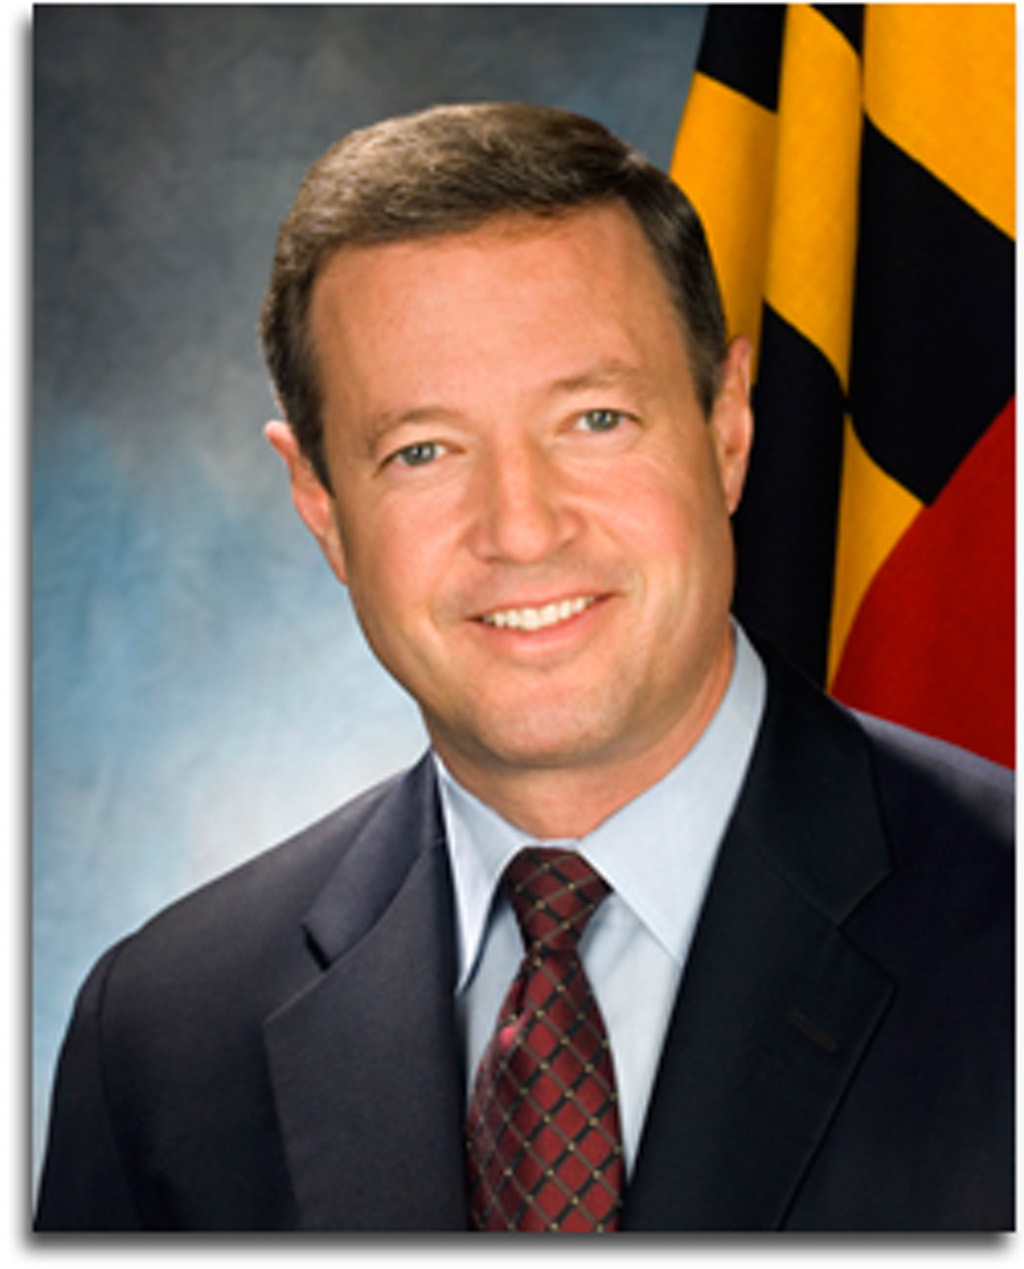 LEGISLATION: Maryland Governor Makes Death Penalty Repeal a Priority